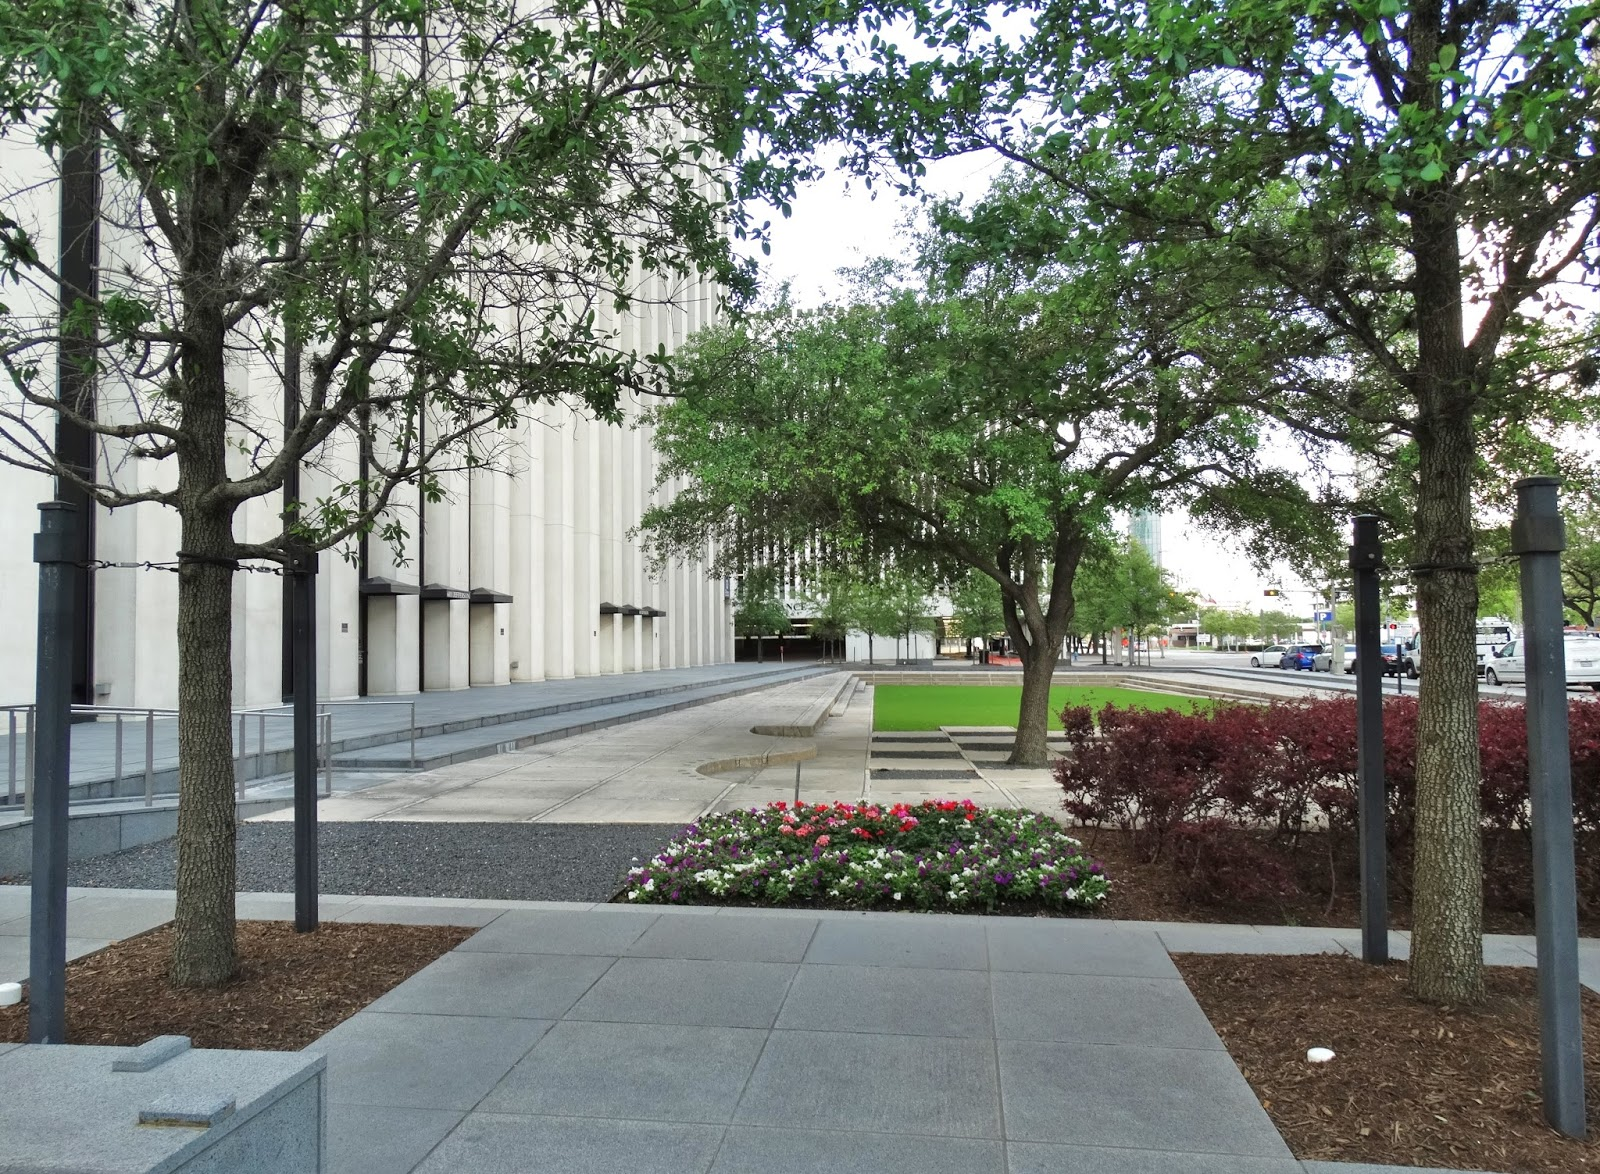 601 jefferson street houston tx 77002 - Plaza And Landscaping On South Side Of Kbr Tower March 2016